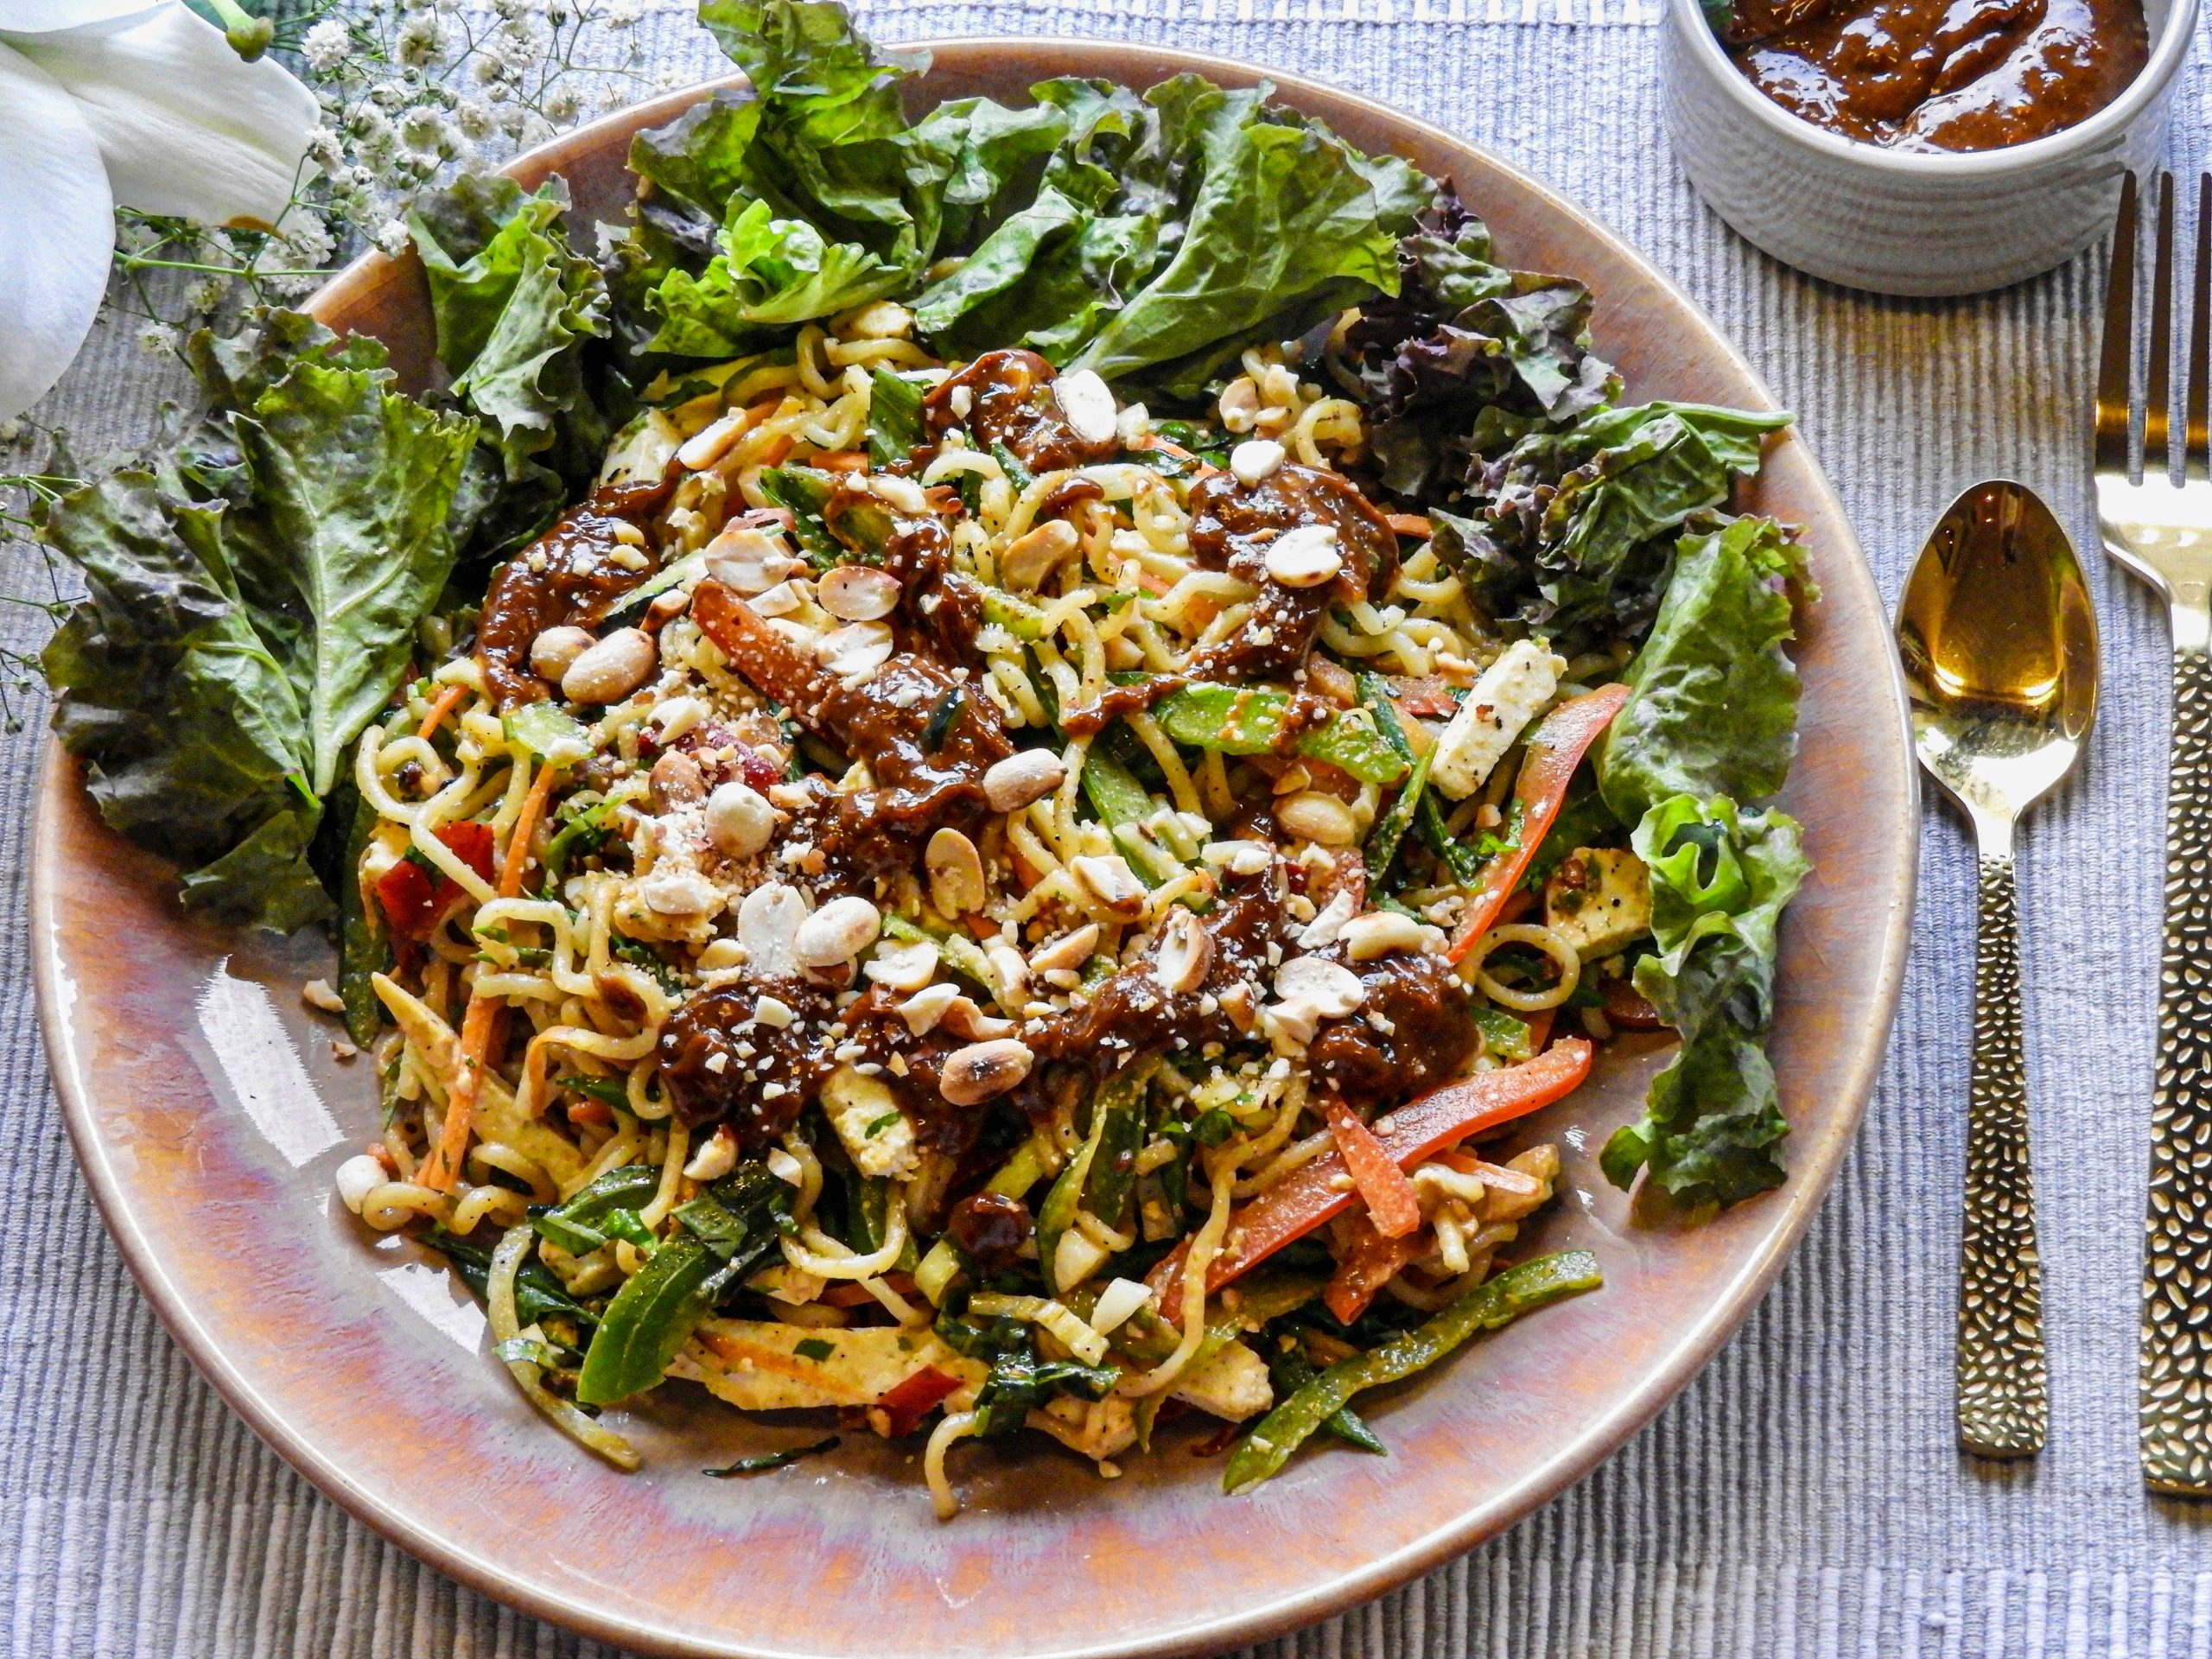 Ramen Noodle Vegetable Salad with Jalapeno Peanut Butter Dressing - Asian Cuisine at Kitchen by Nidhi